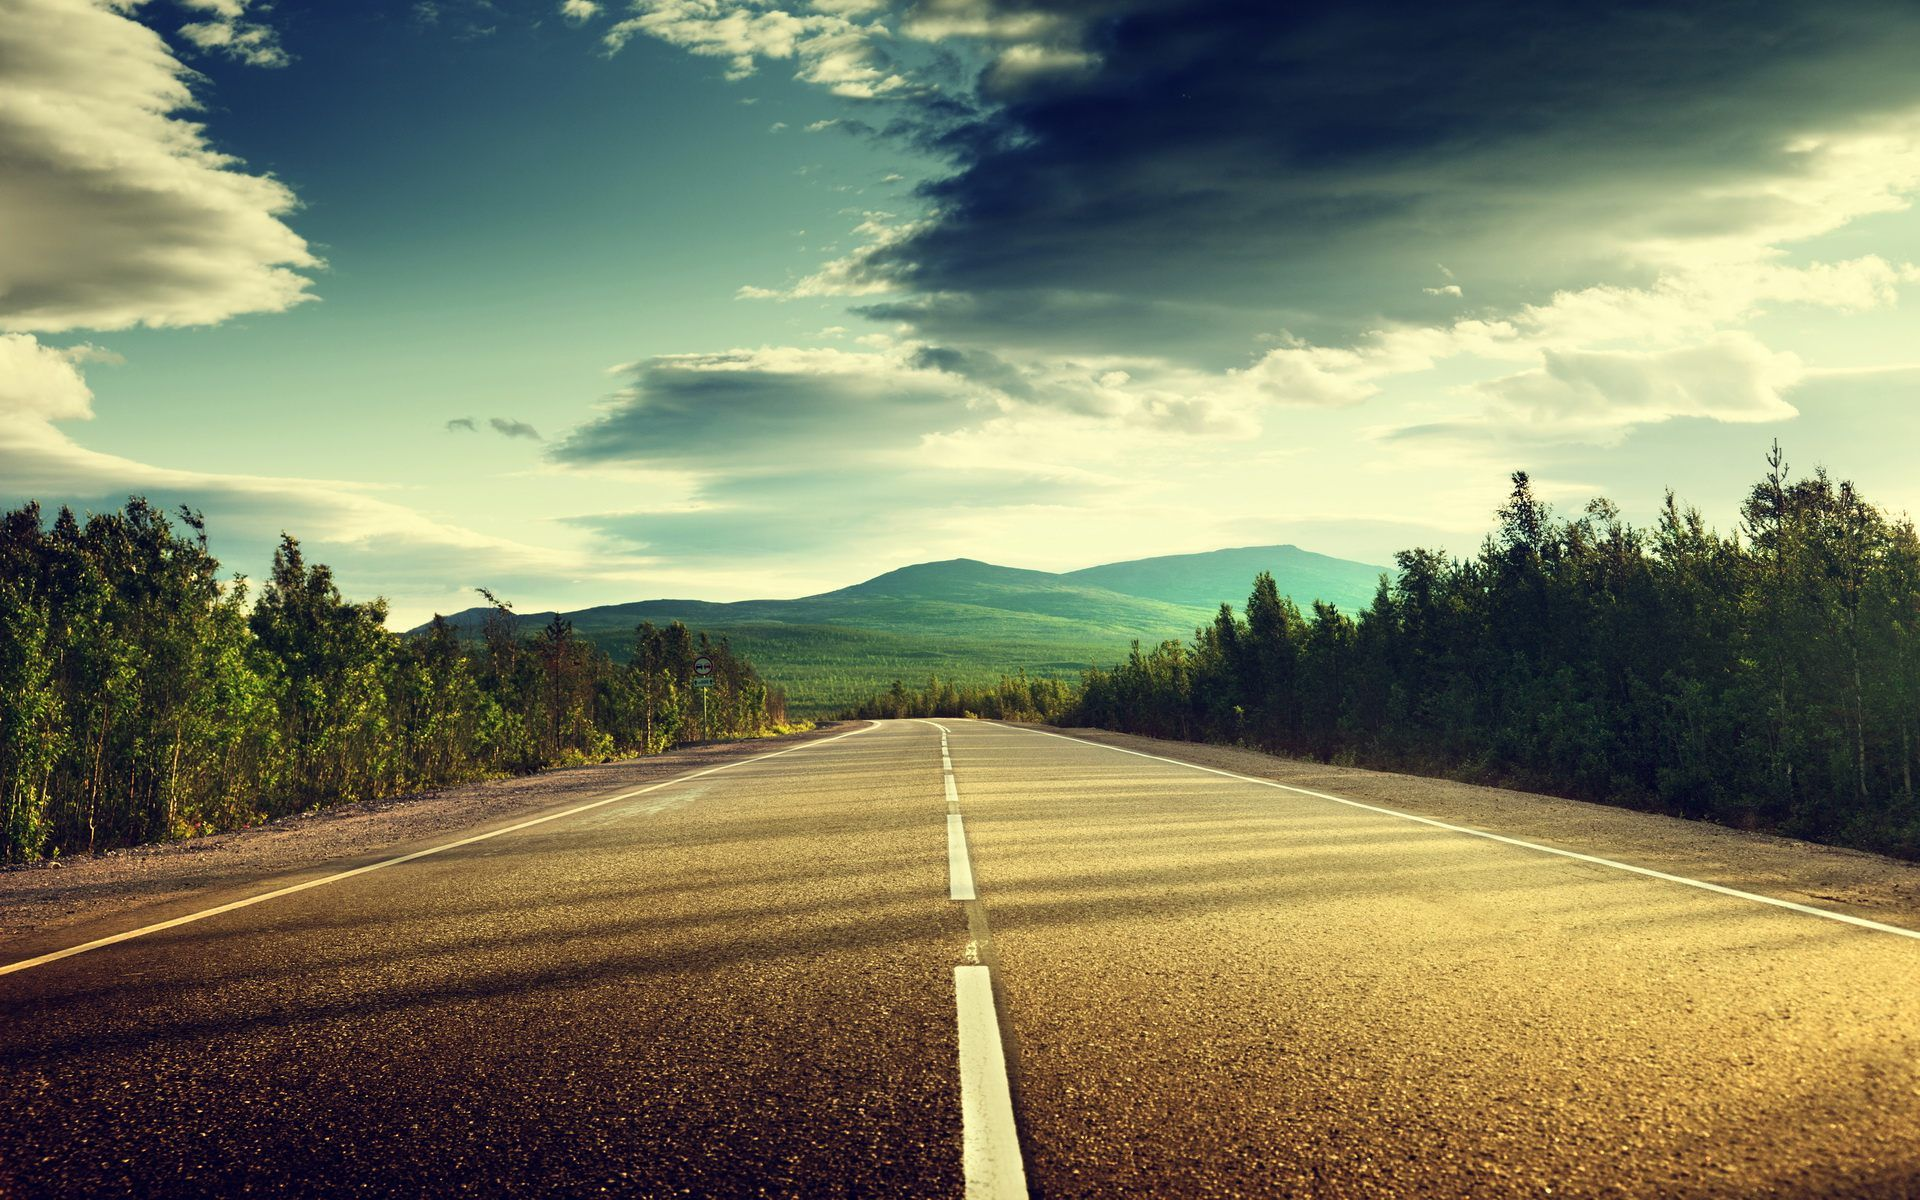 Road Wallpaper High Quality Resolution | Landscape Wallpapers in 2019 | Landscape wallpaper, Pc ...